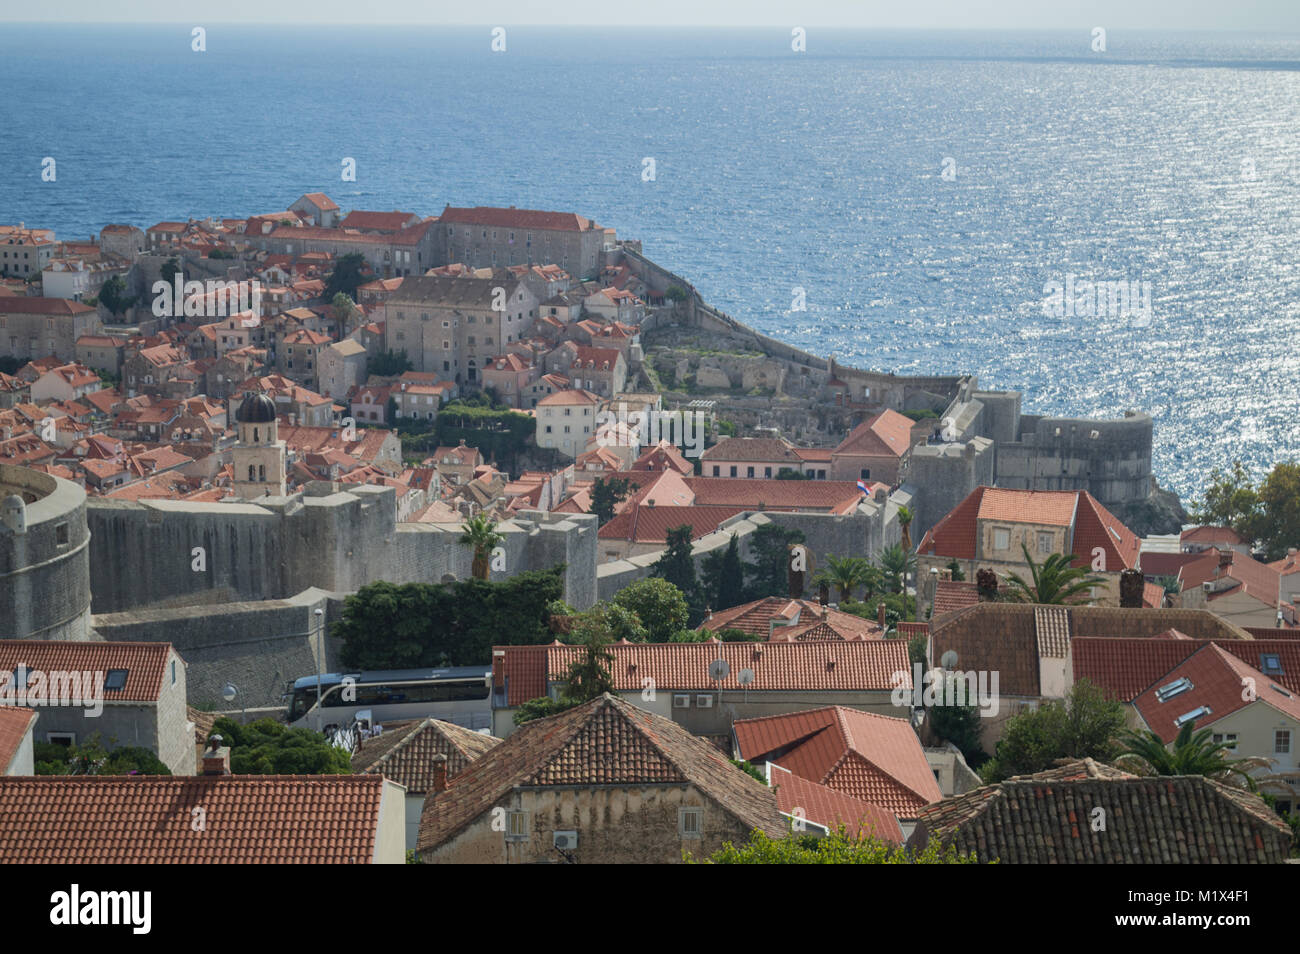 View onto Old Town of Dubrovnik from Lookout Point, Croatia - Stock Image